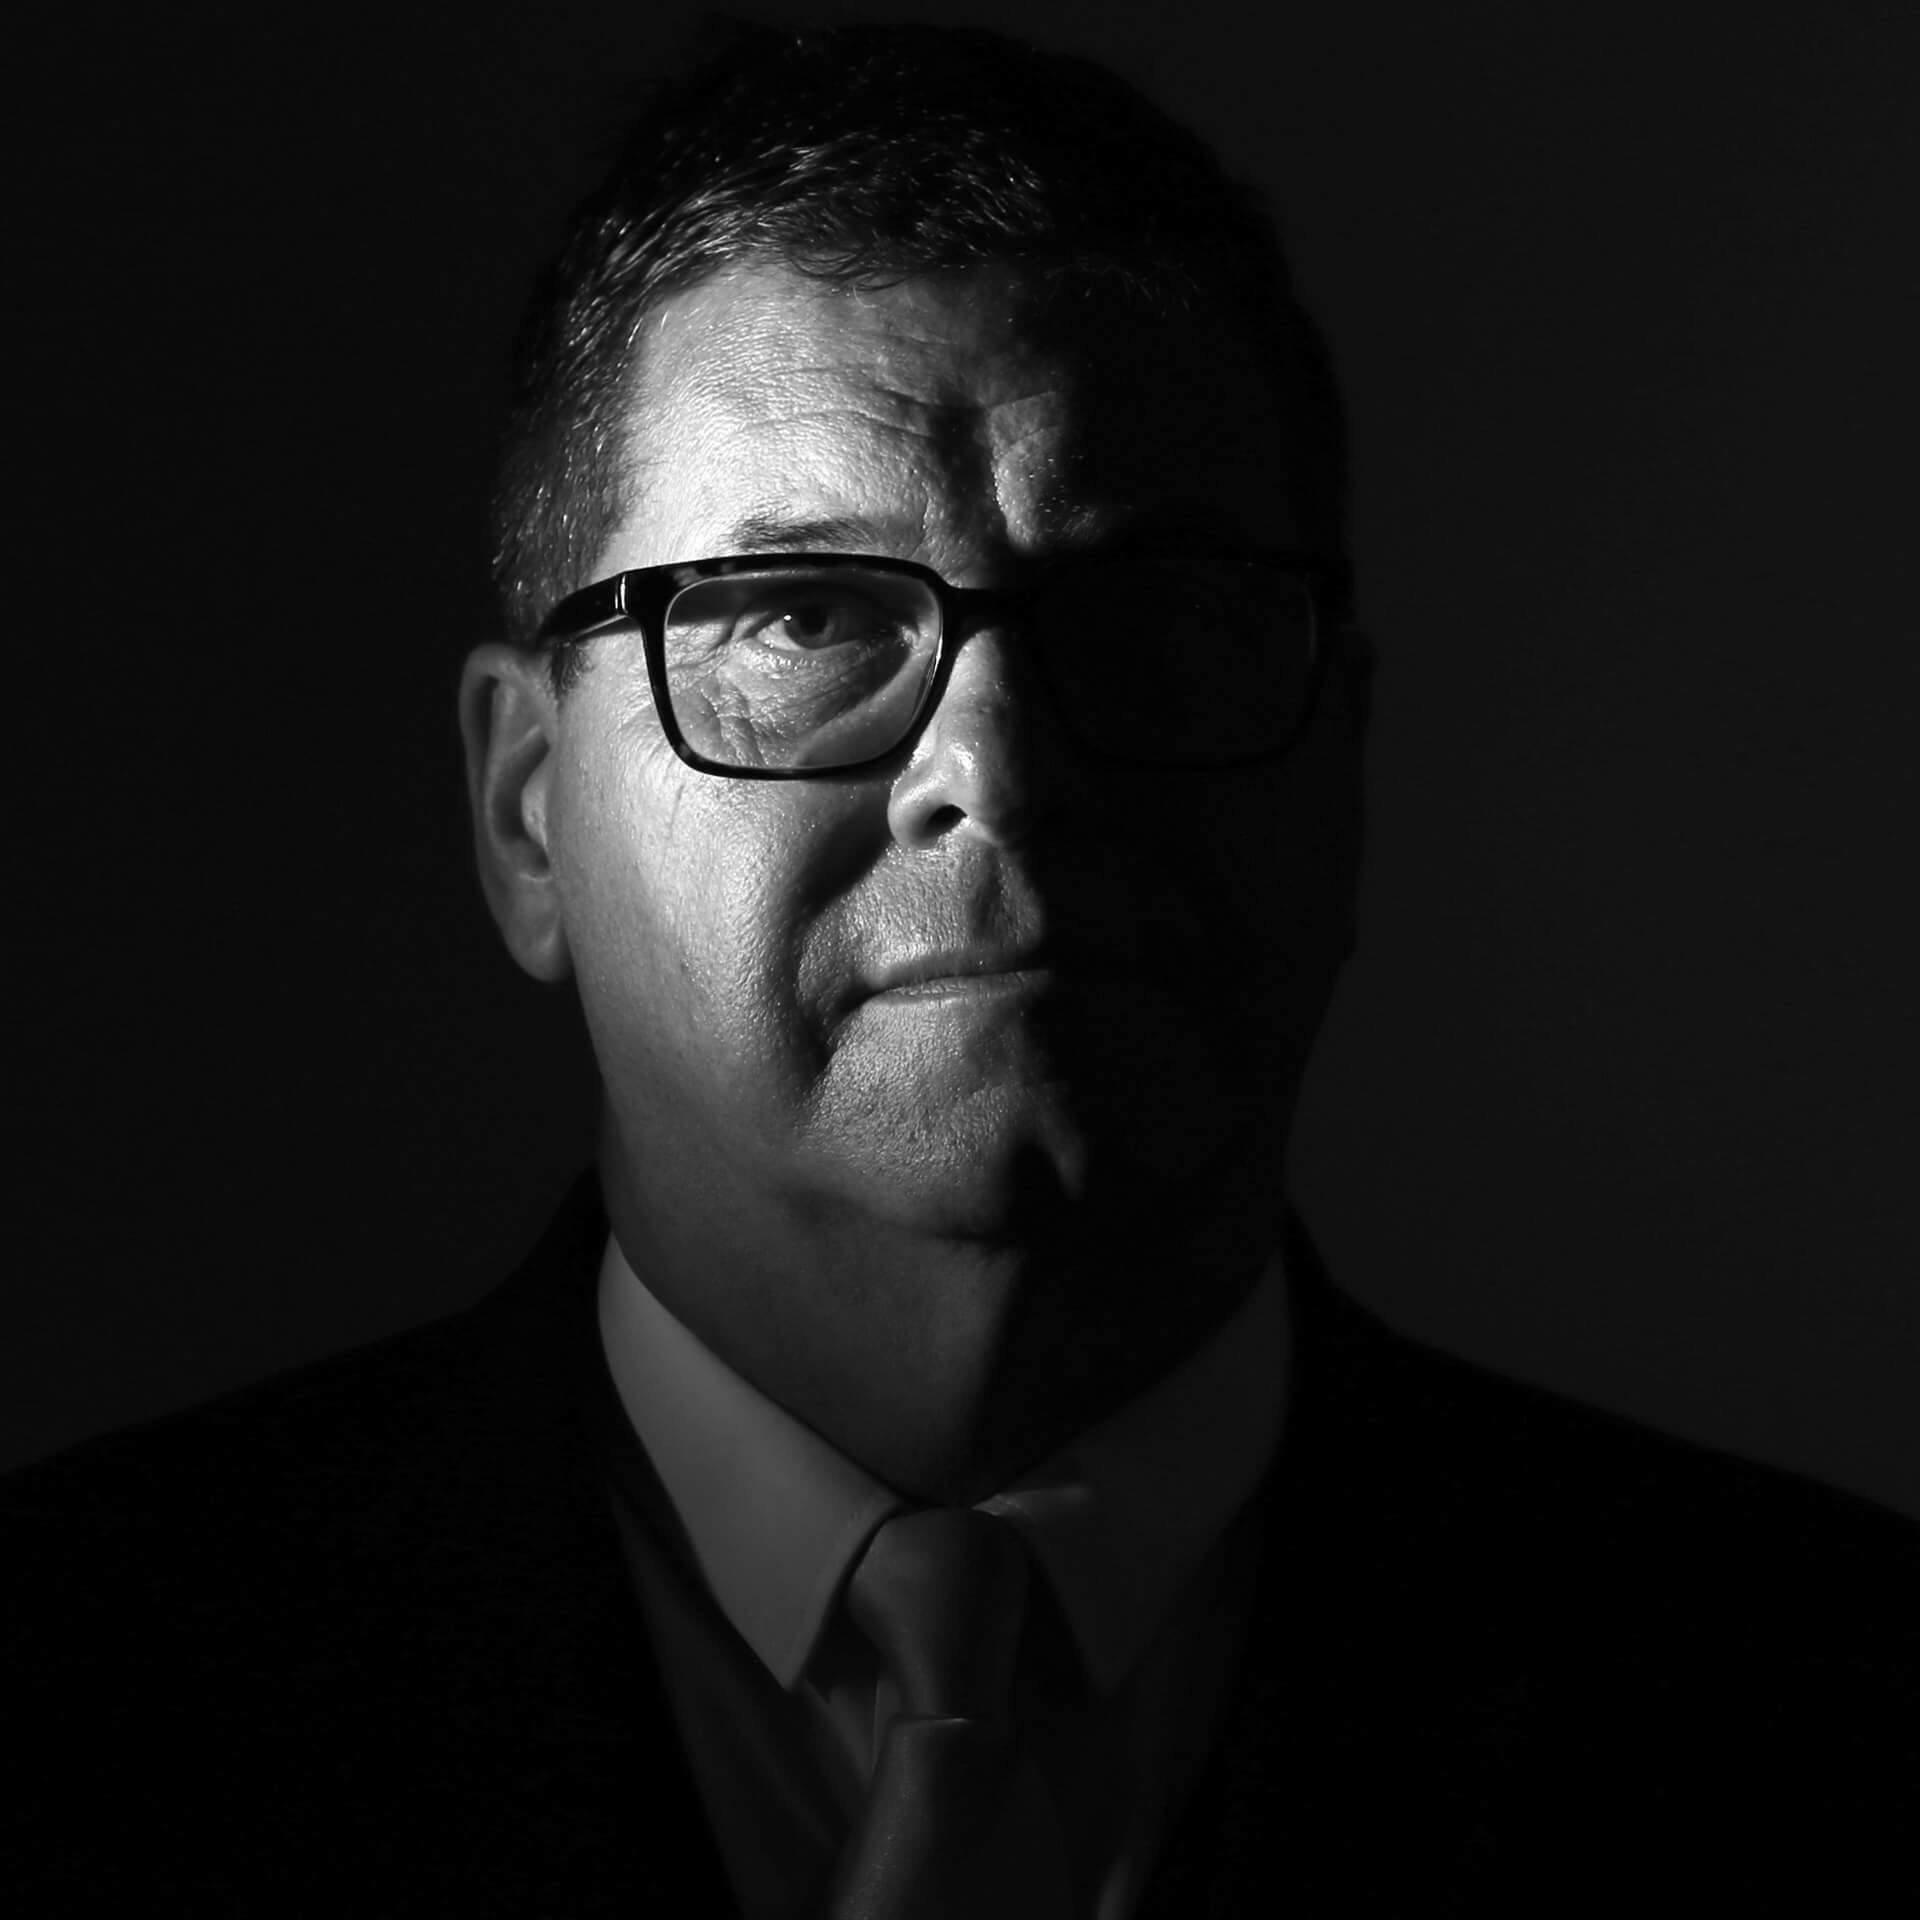 An 'eerie' style B&W image of Tim Hodges. Tim is the Welfare guy at a local Funeral Directors. The images shows Tim's head and neck, with it being side lit to emphasise only the RHS of his head .